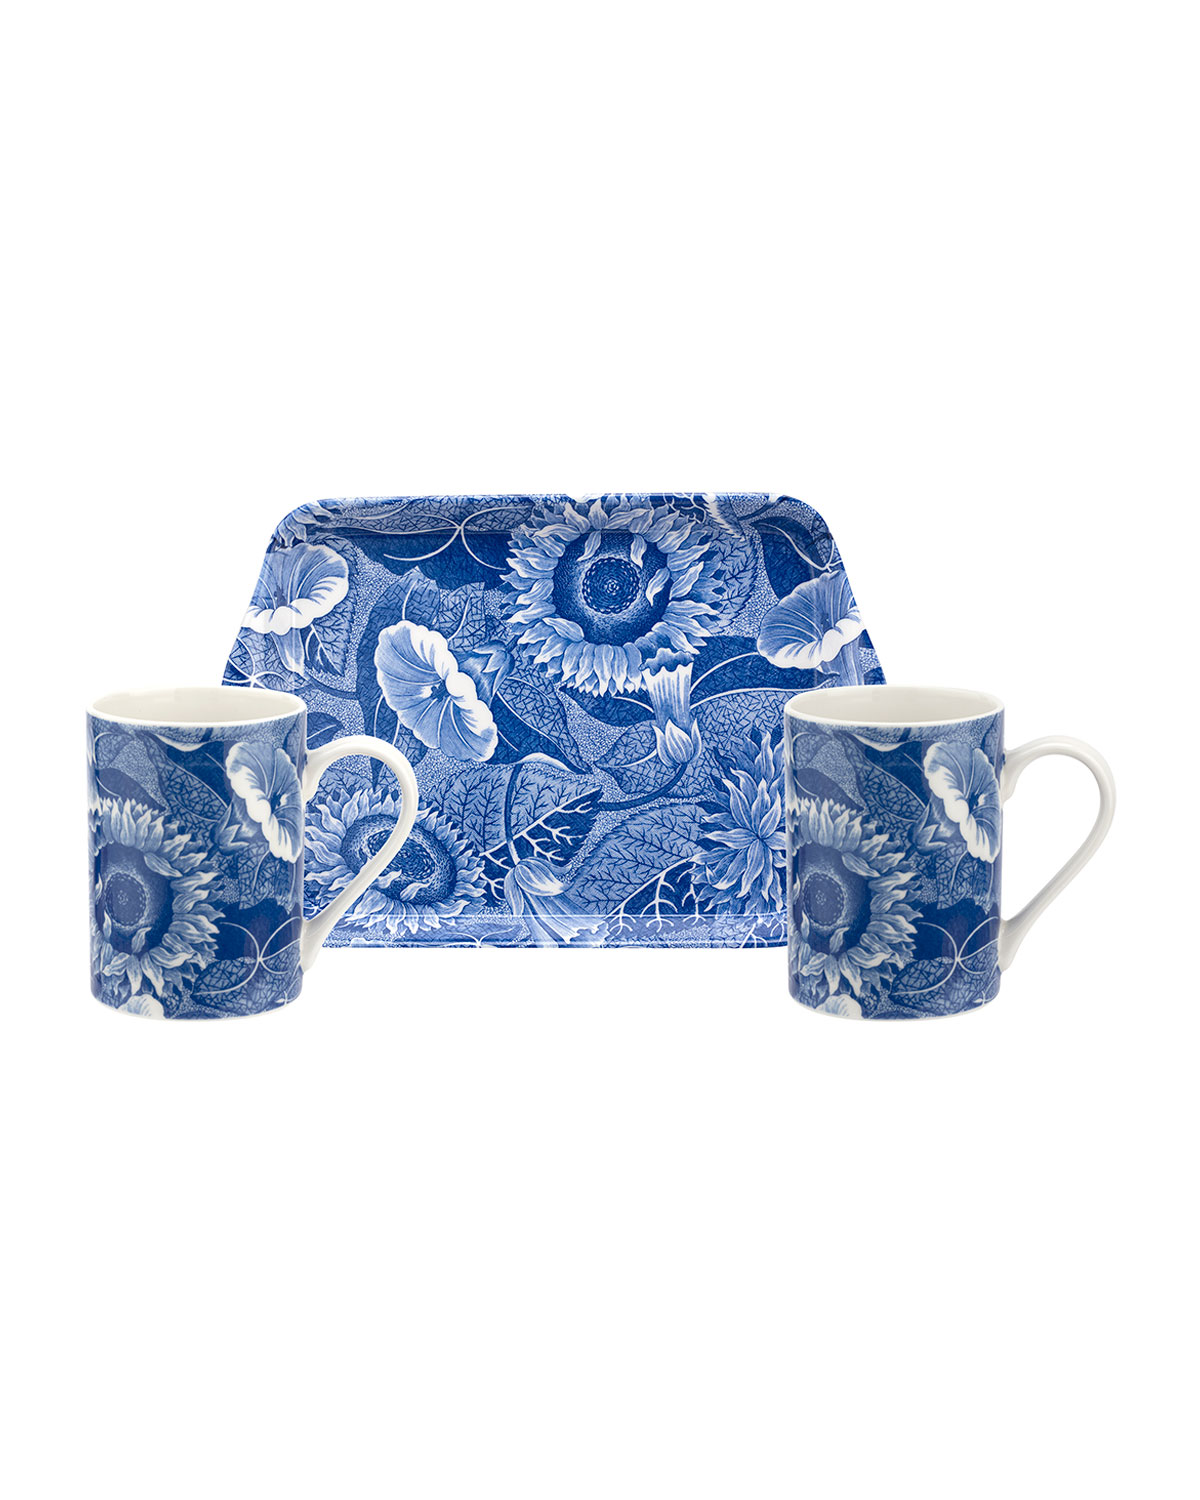 Spode Blue Room Sunflower Melamine Tray with Mugs